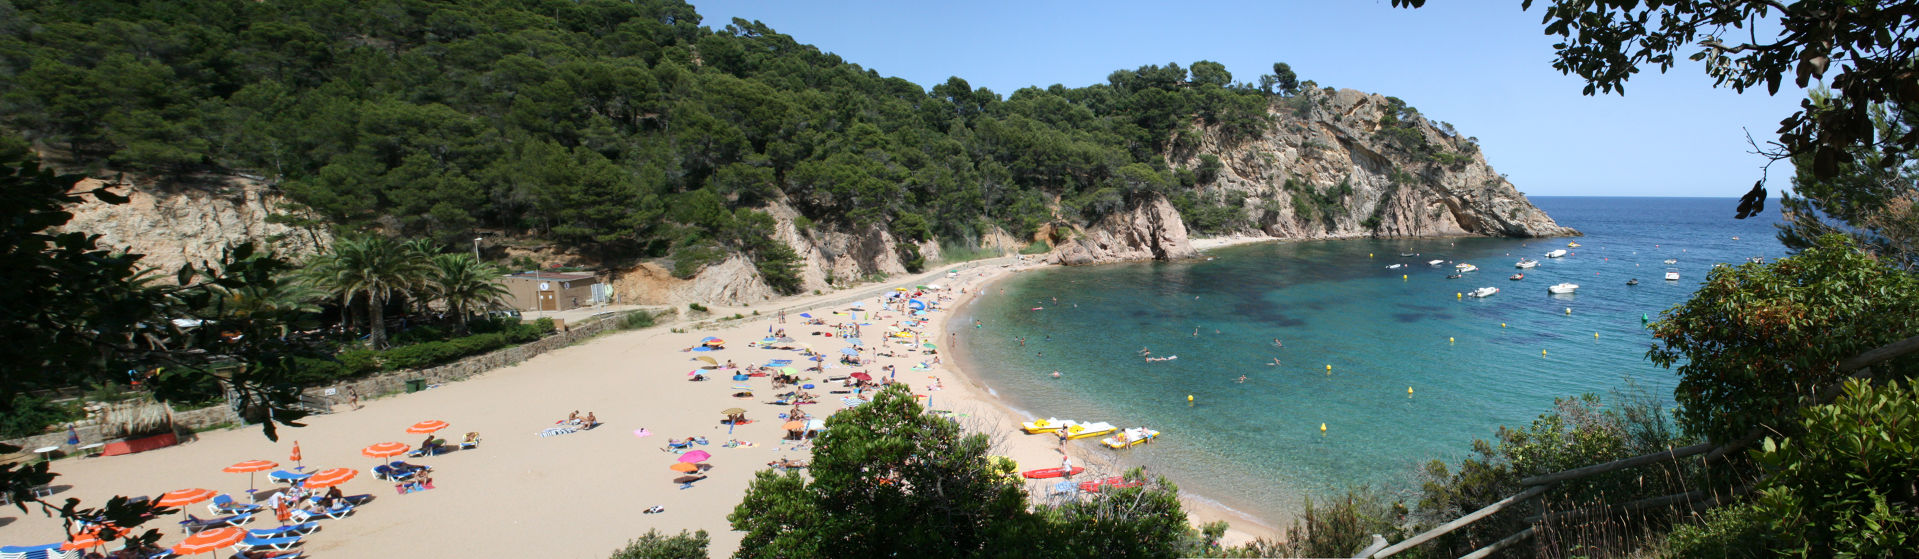 Beaches and coves de Llafranc